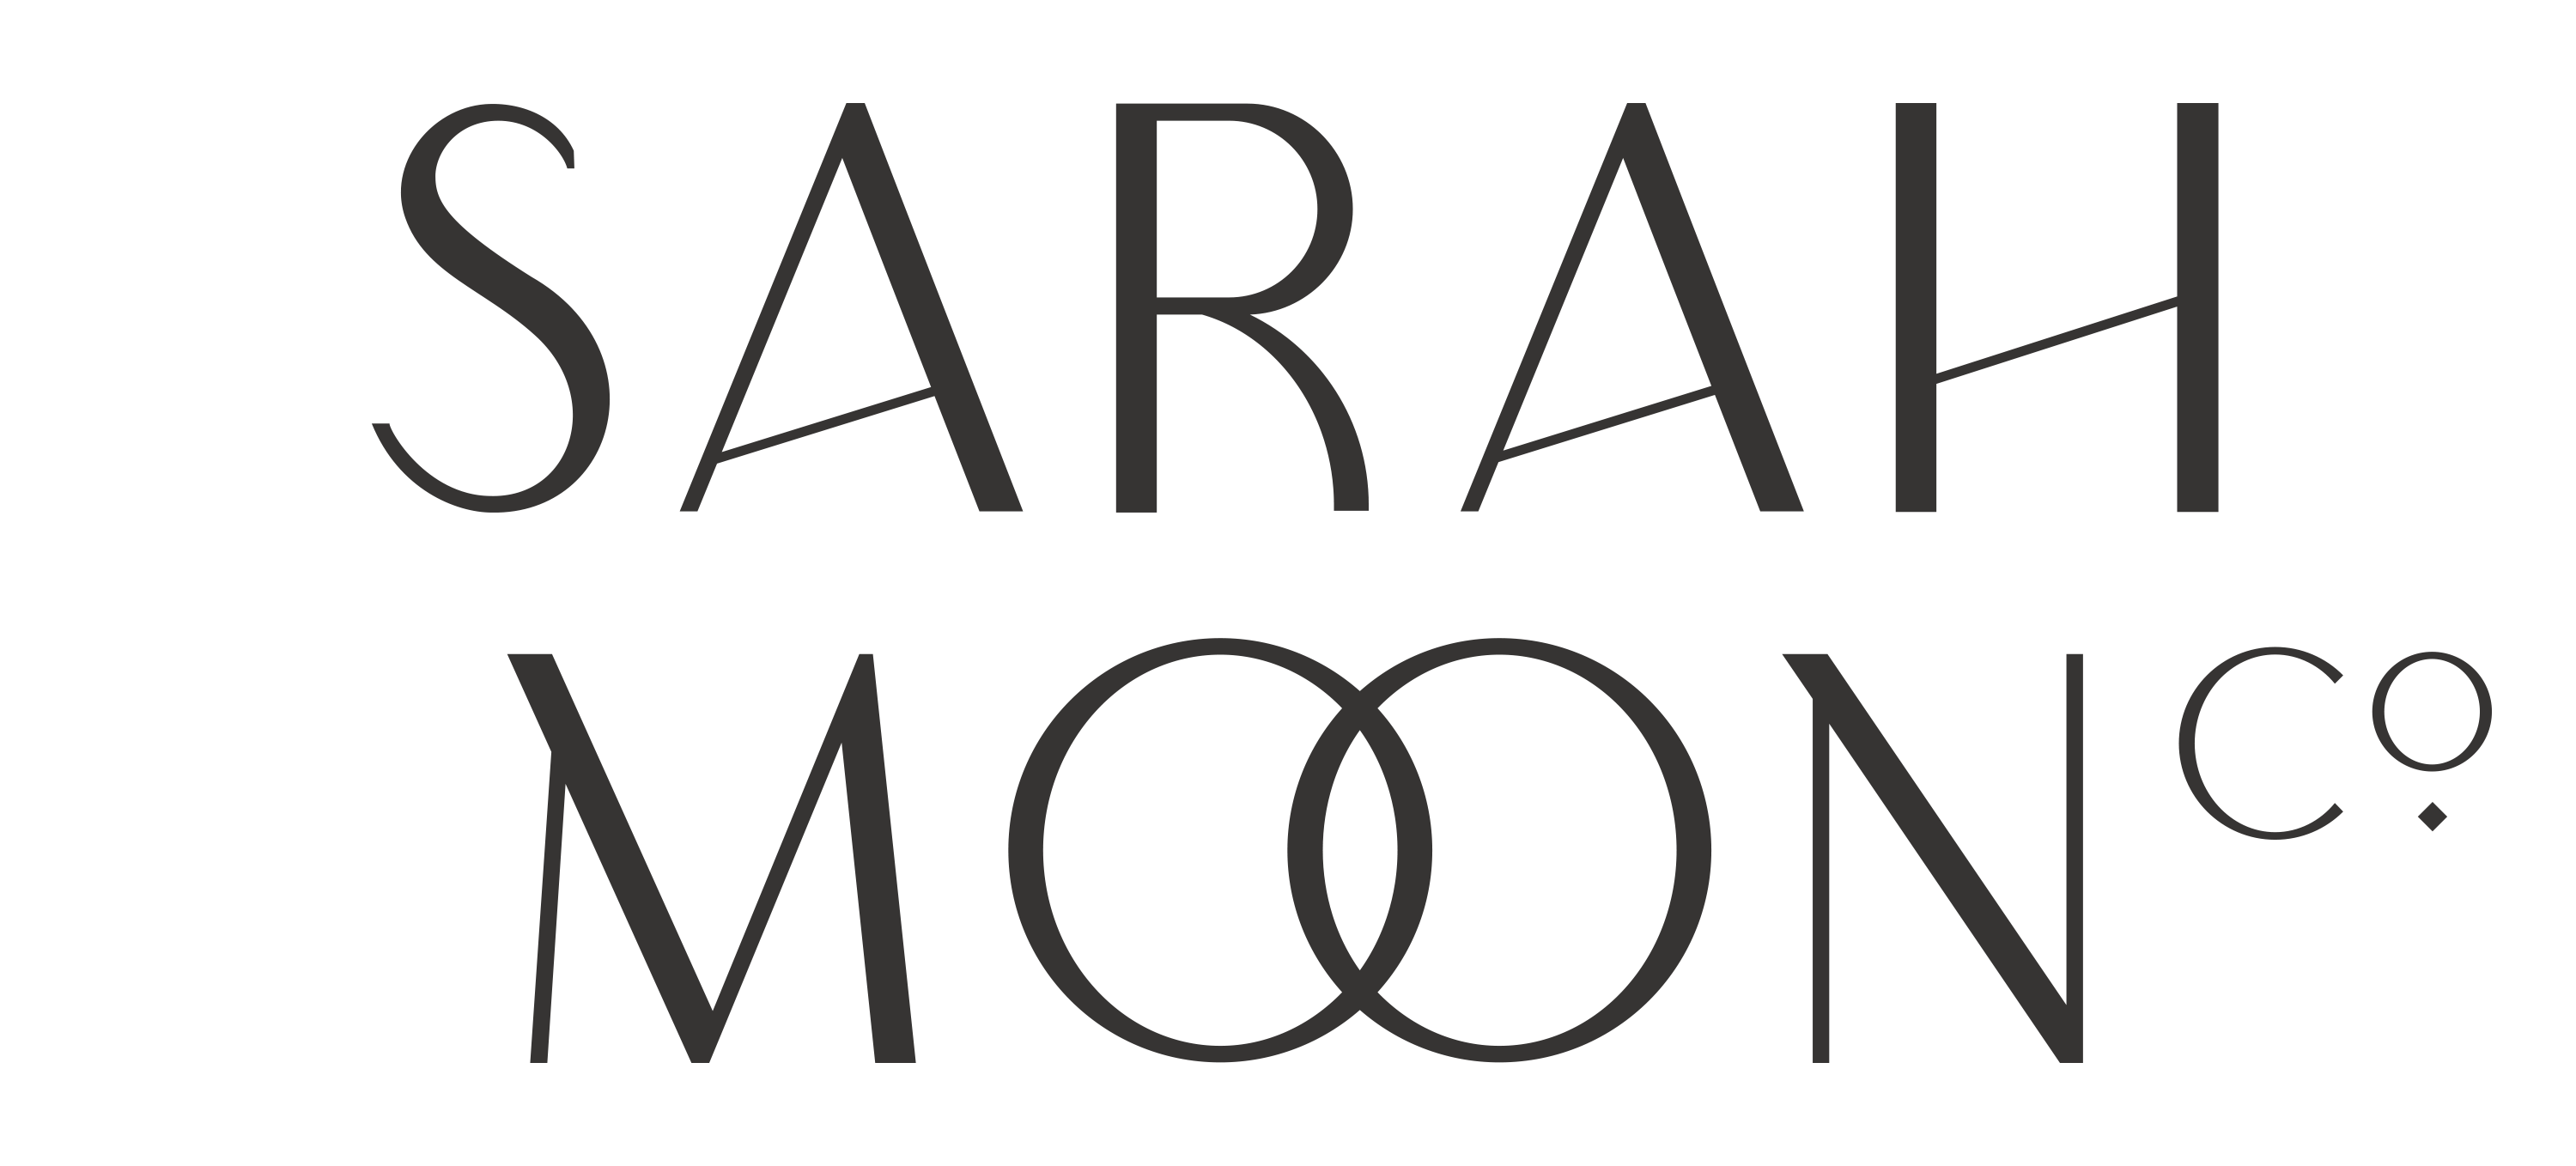 Sarah Moon & Co | Courses & Membership